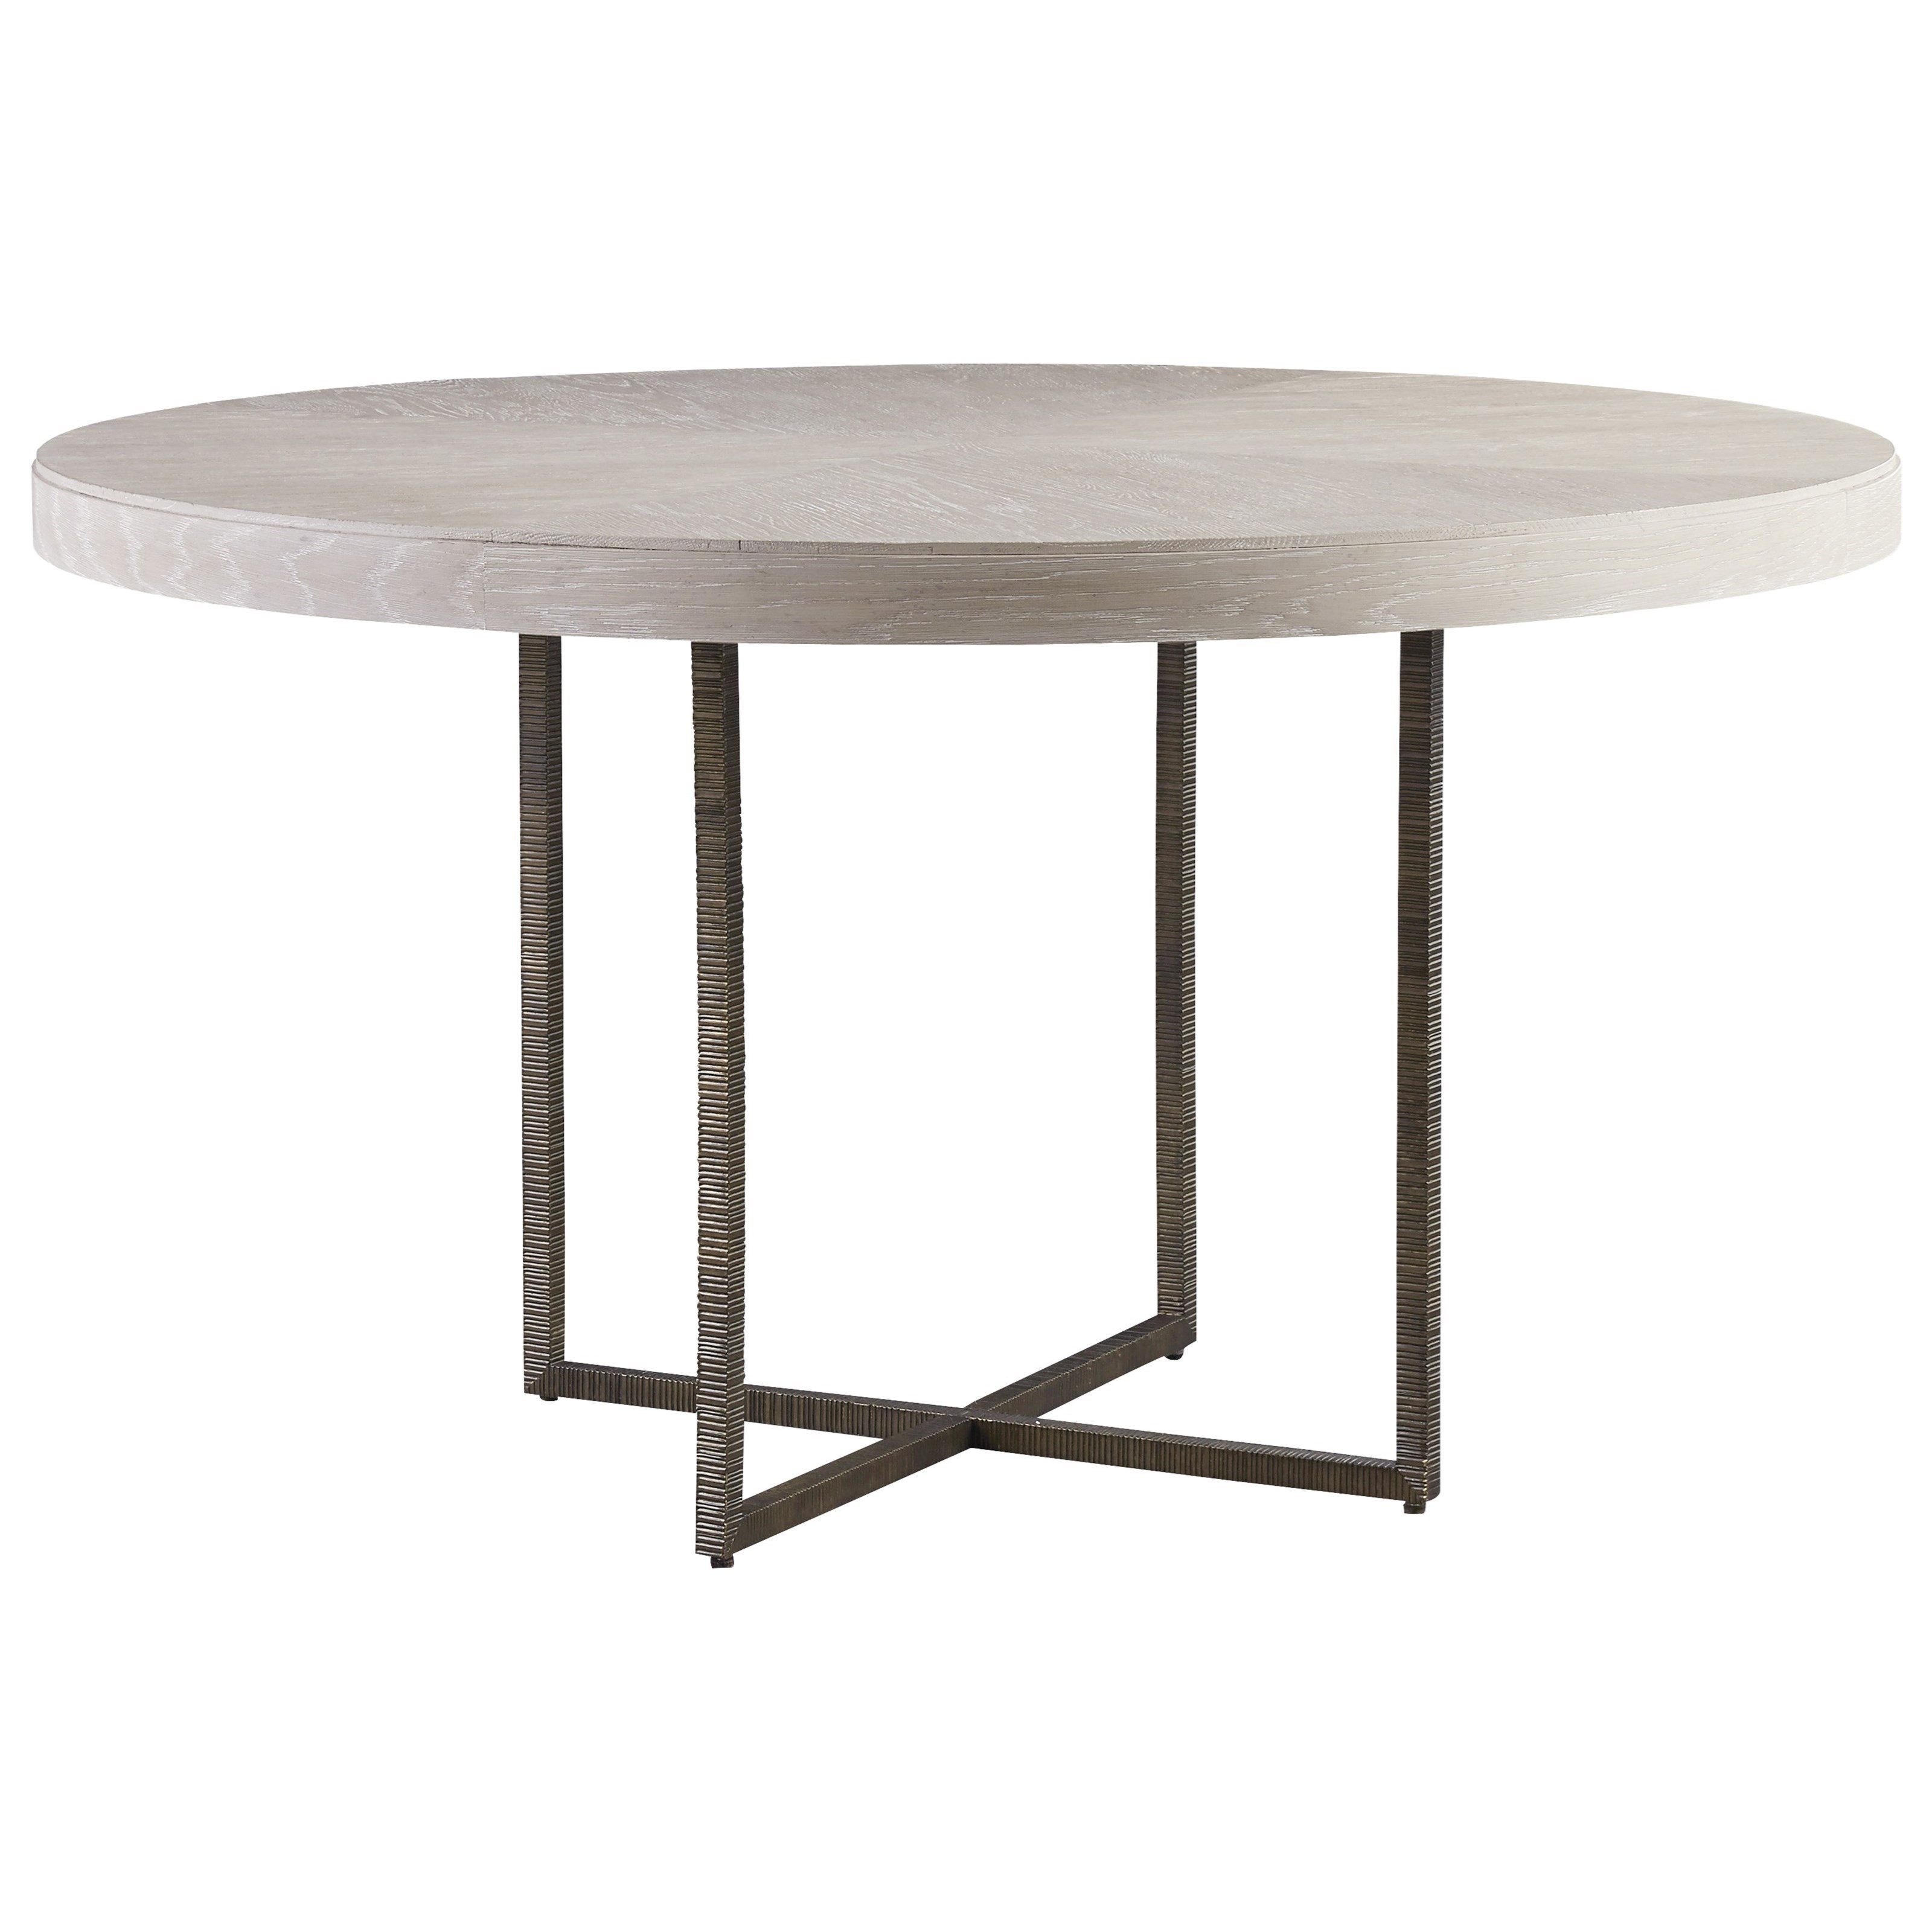 Modern Robards Round Dining Table by Universal at Baer's Furniture